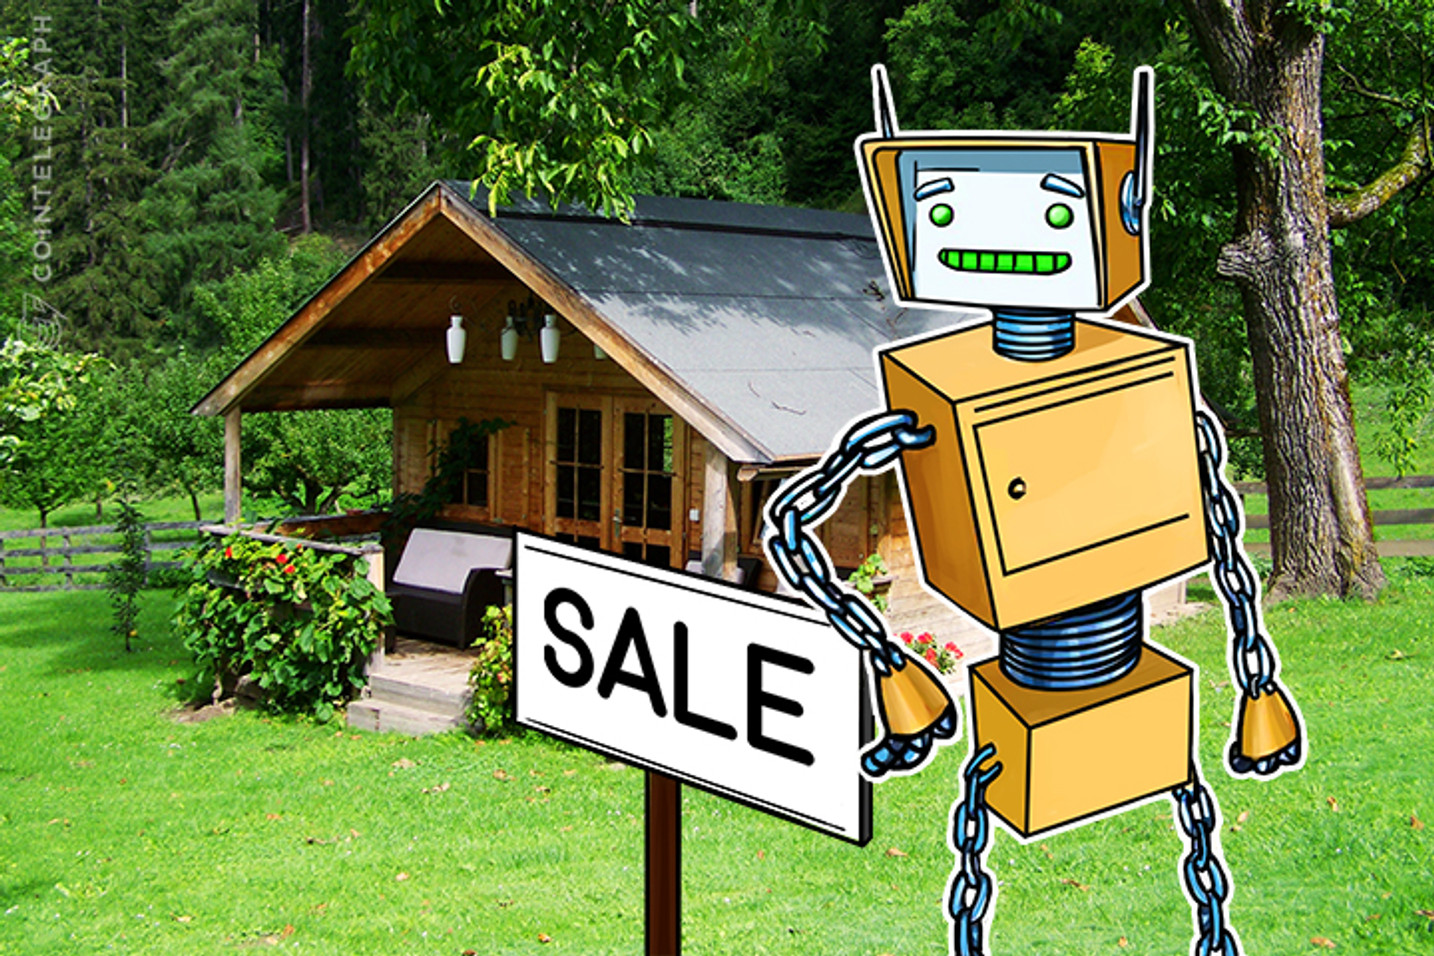 Sweden Officially Started Using Blockchain to Register Land and Properties